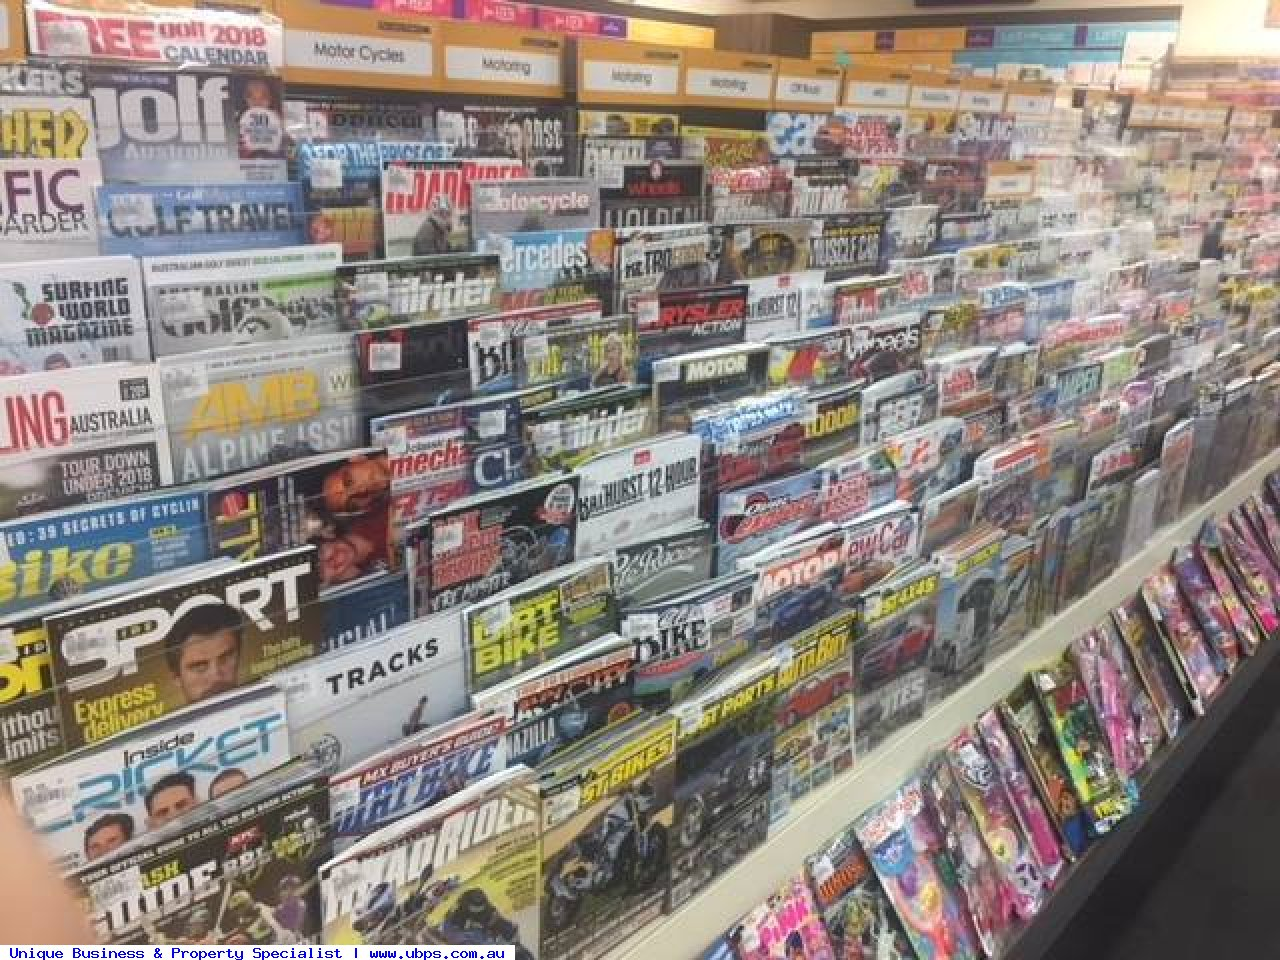 Newsagency / Lotteries